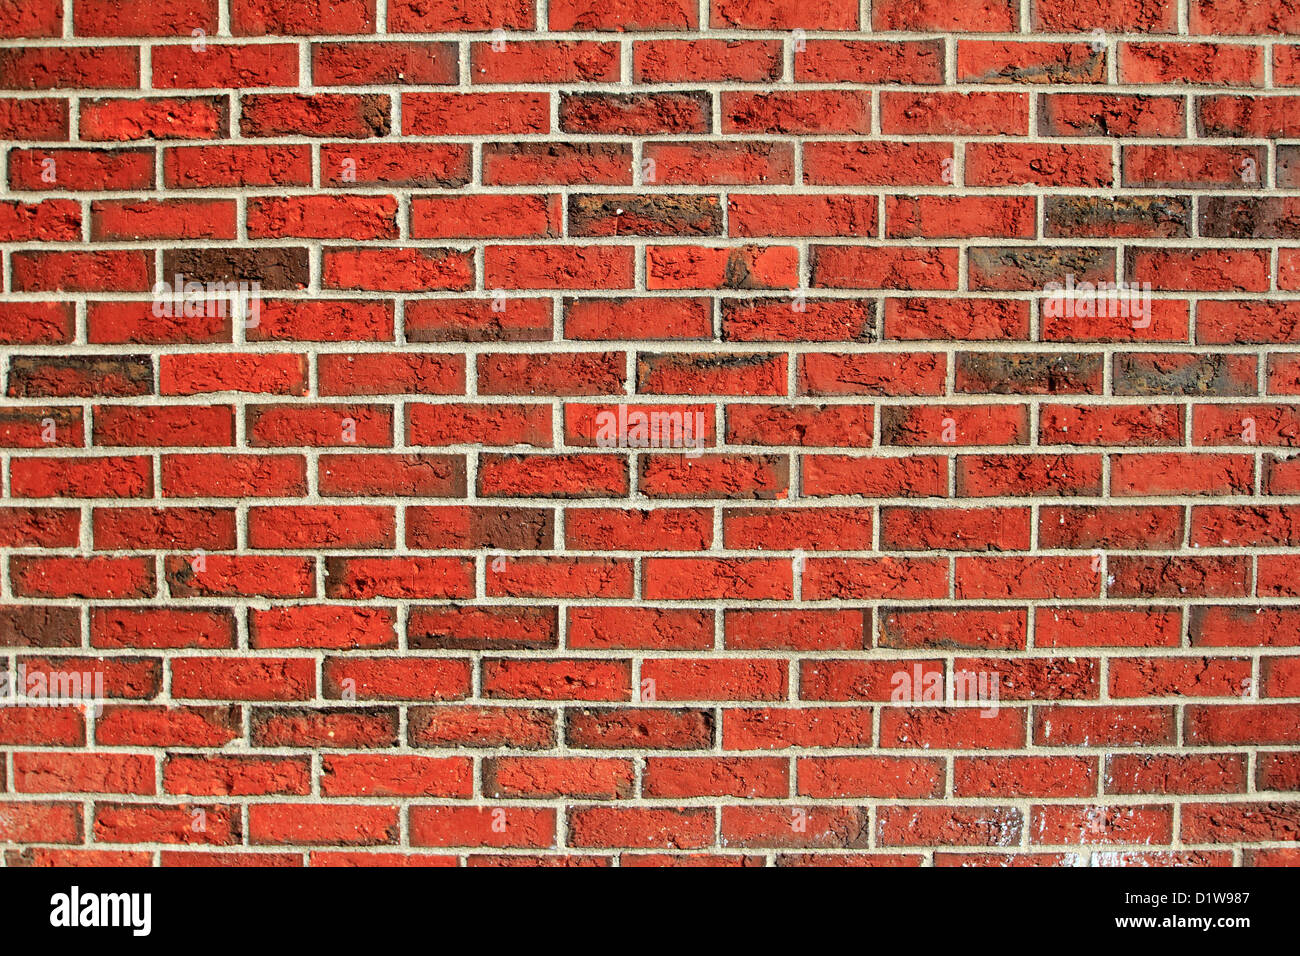 a red brick wall background backdrop pattern wallpaper Stock Photo